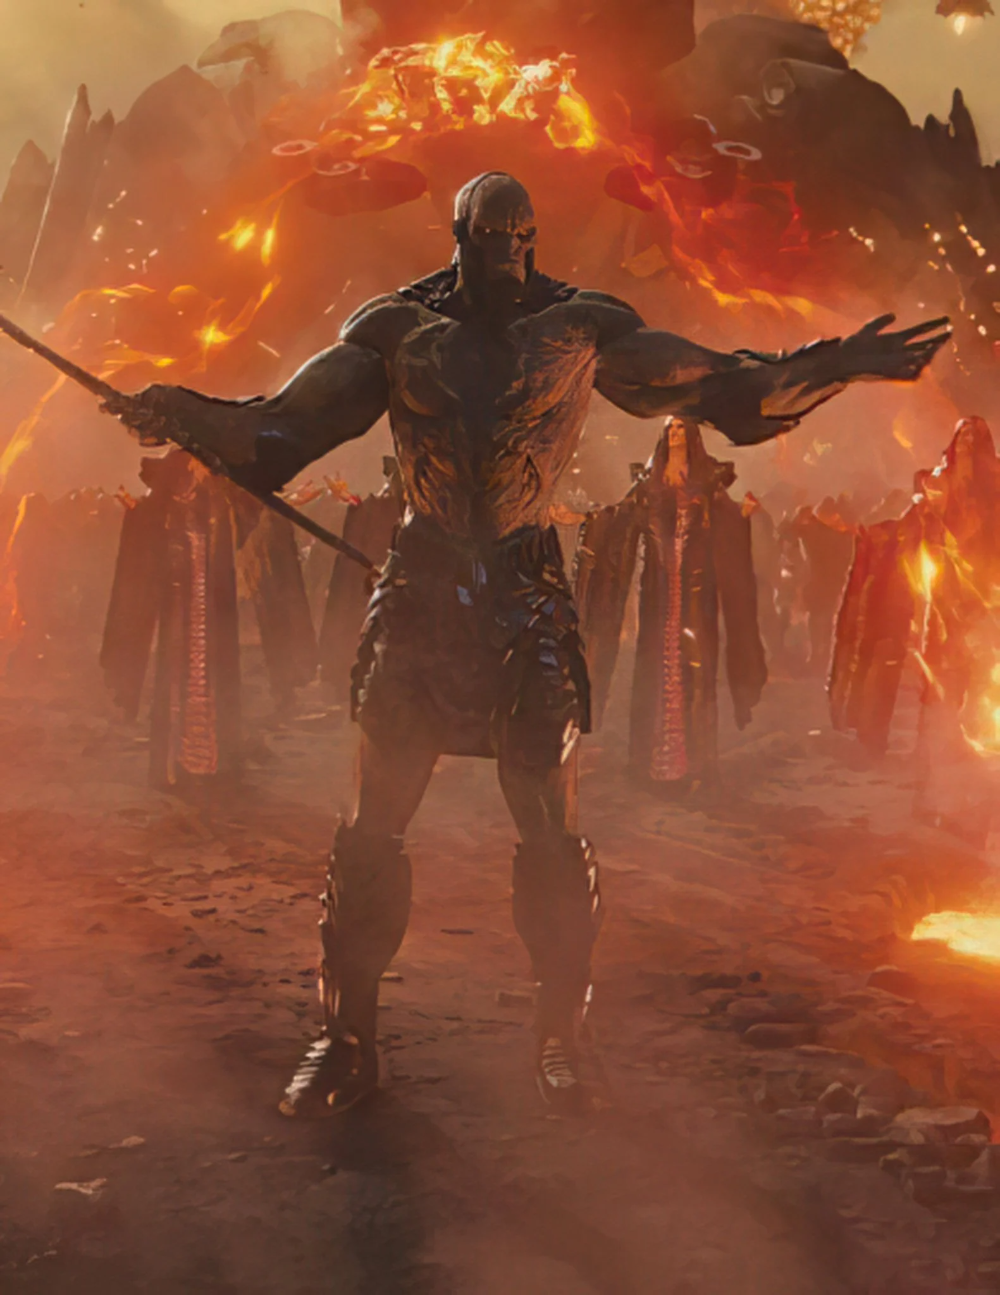 New Zack Snyder S Justice League Images From The Upcoming Film In 2021 Darkseid Dc Comics Wallpaper Justice League Art